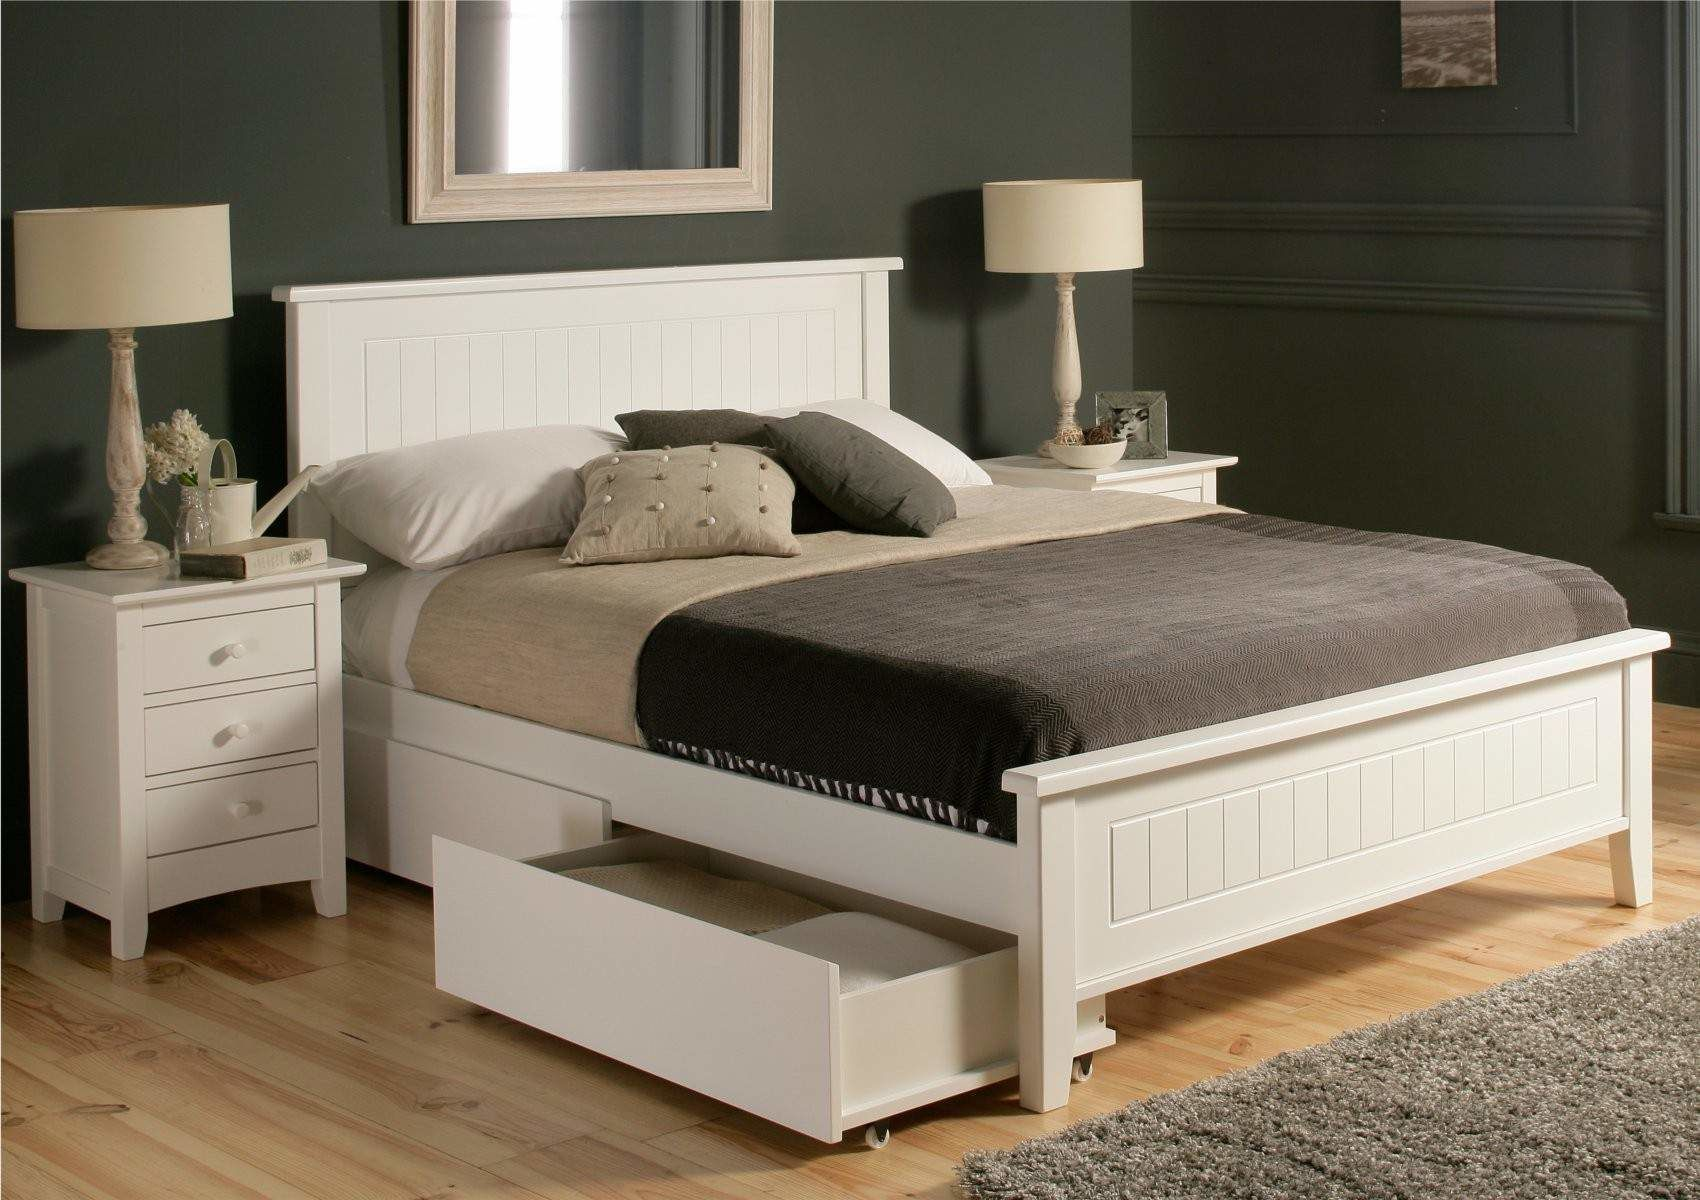 Queen Bed With Trundle Australia   My Style   Pinterest   Queen beds ...